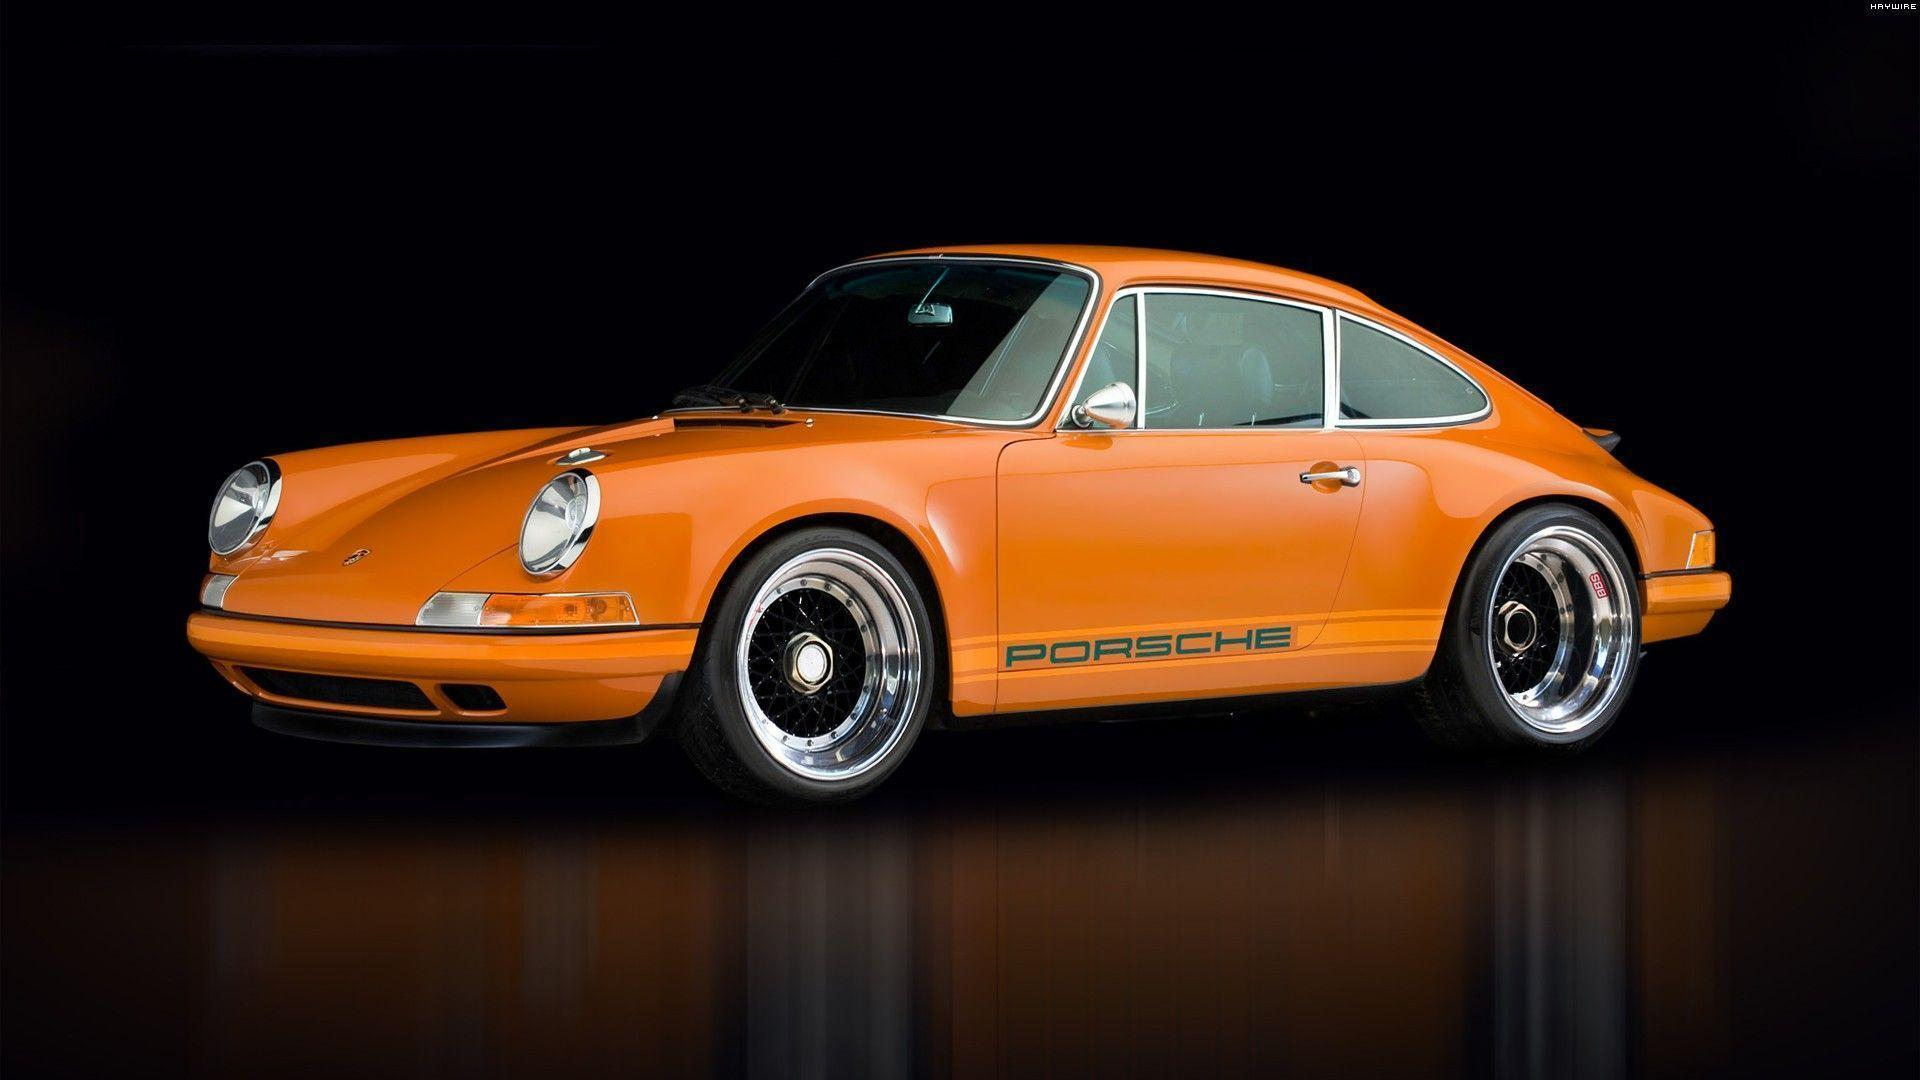 Porsche 911 Wallpapers 1920x1080